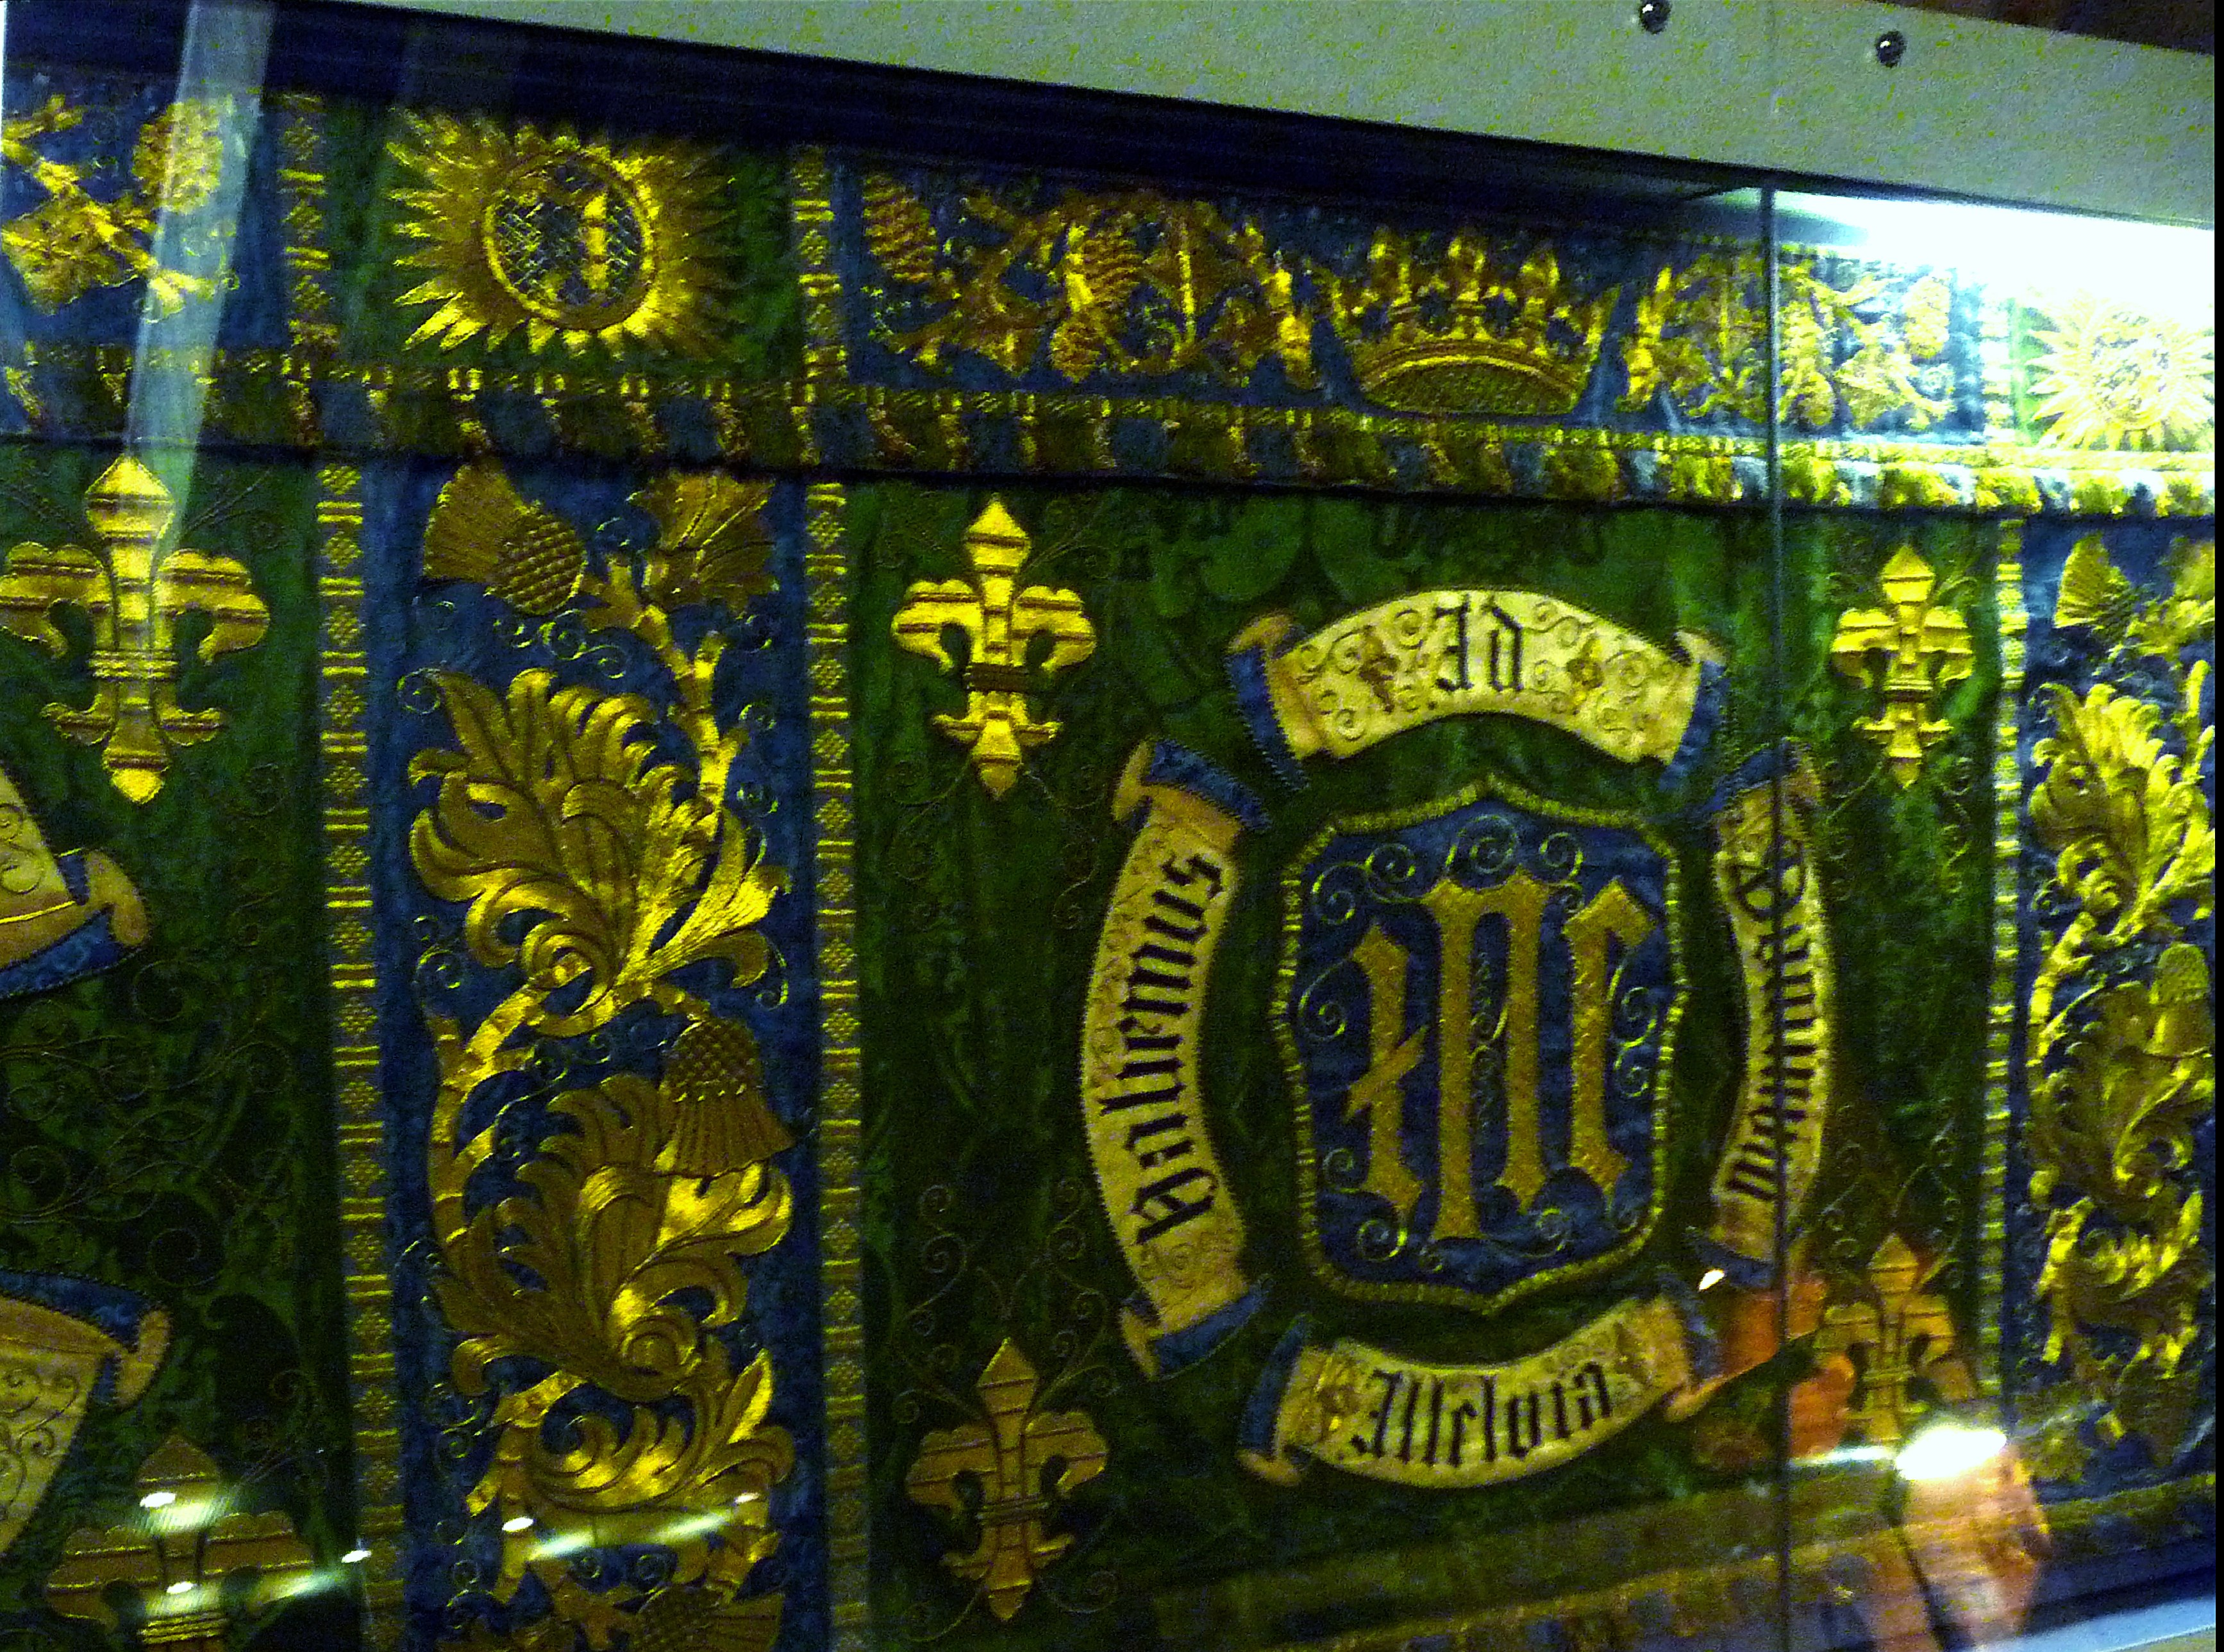 Frontal for the Lady Chapel of Liverpool Cathedral worked by Margaret and Maria Comber between 1906 and 1909. They were members of the Liverpool Cathedral Embroidery Association.